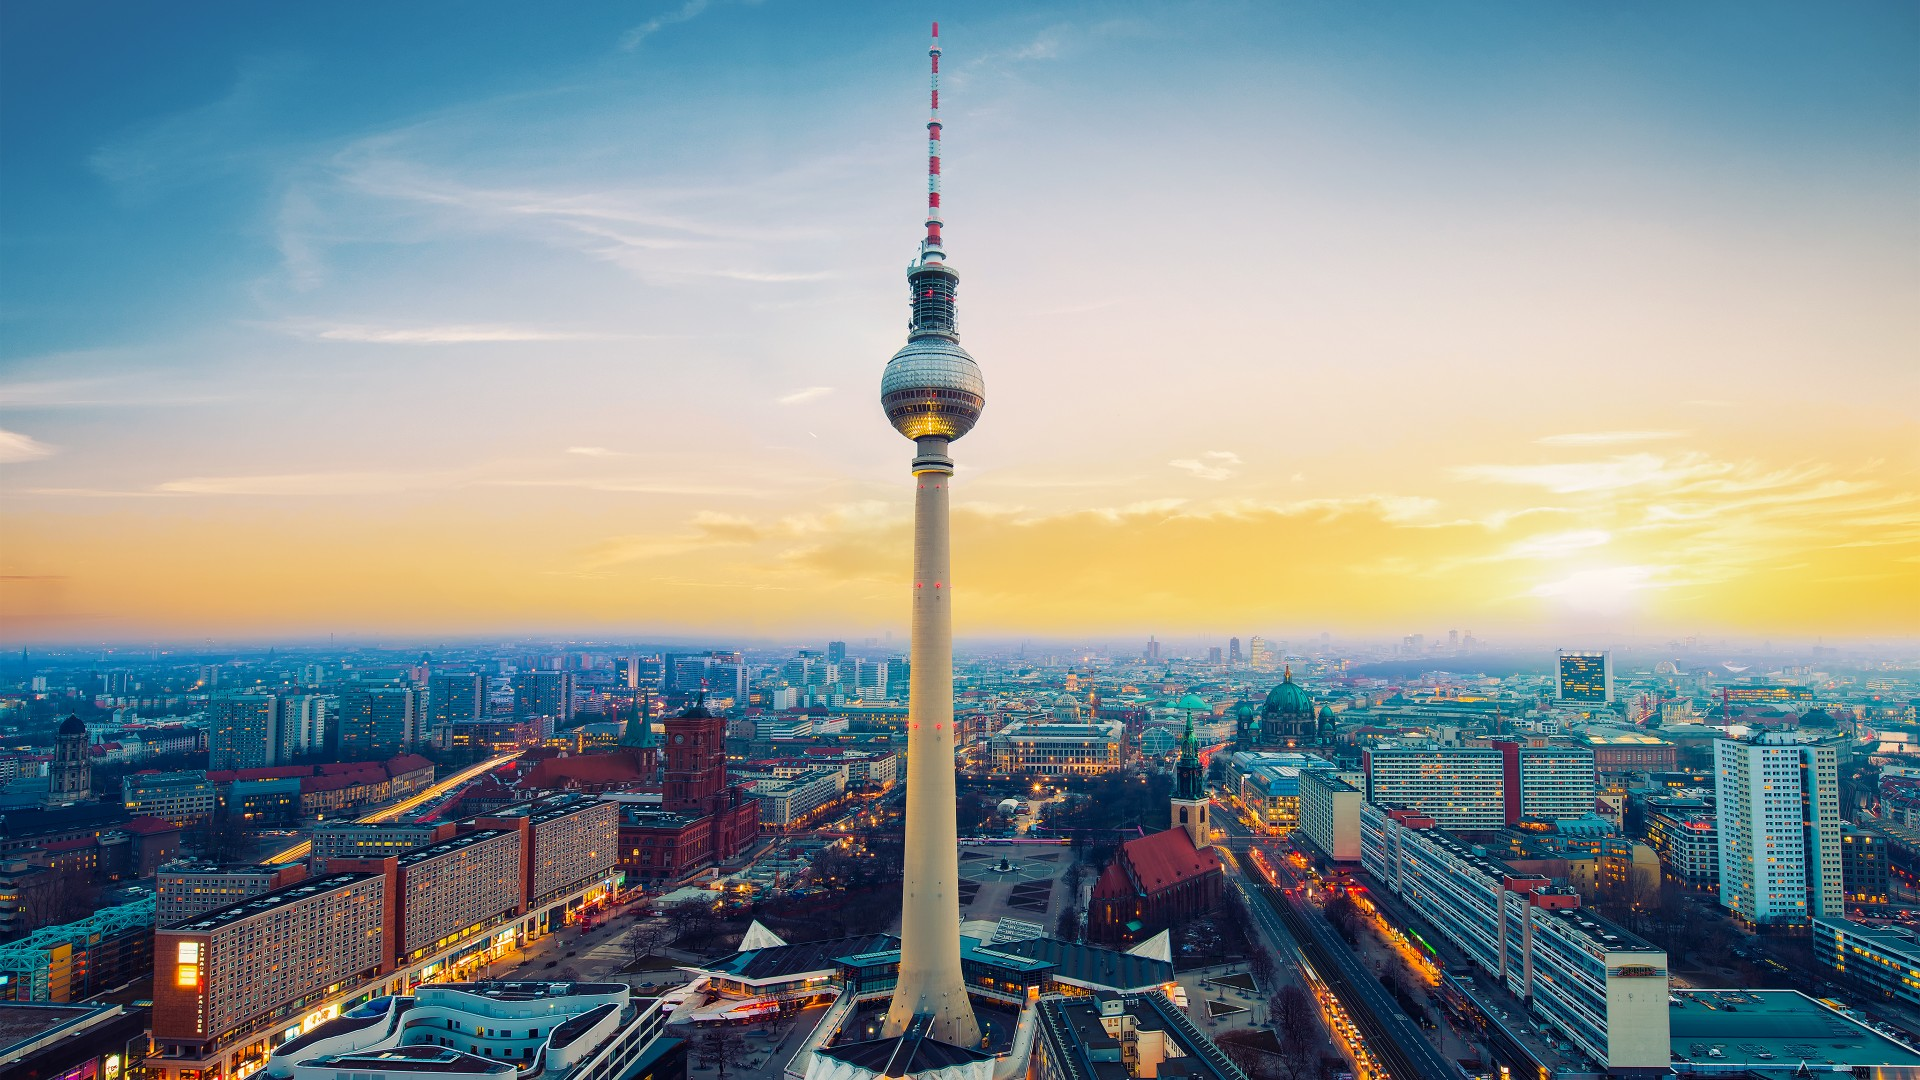 Iphone 5s Wallpapers Full Hd Fernsehturm Berlin Tv Tower Germany Wallpapers Hd